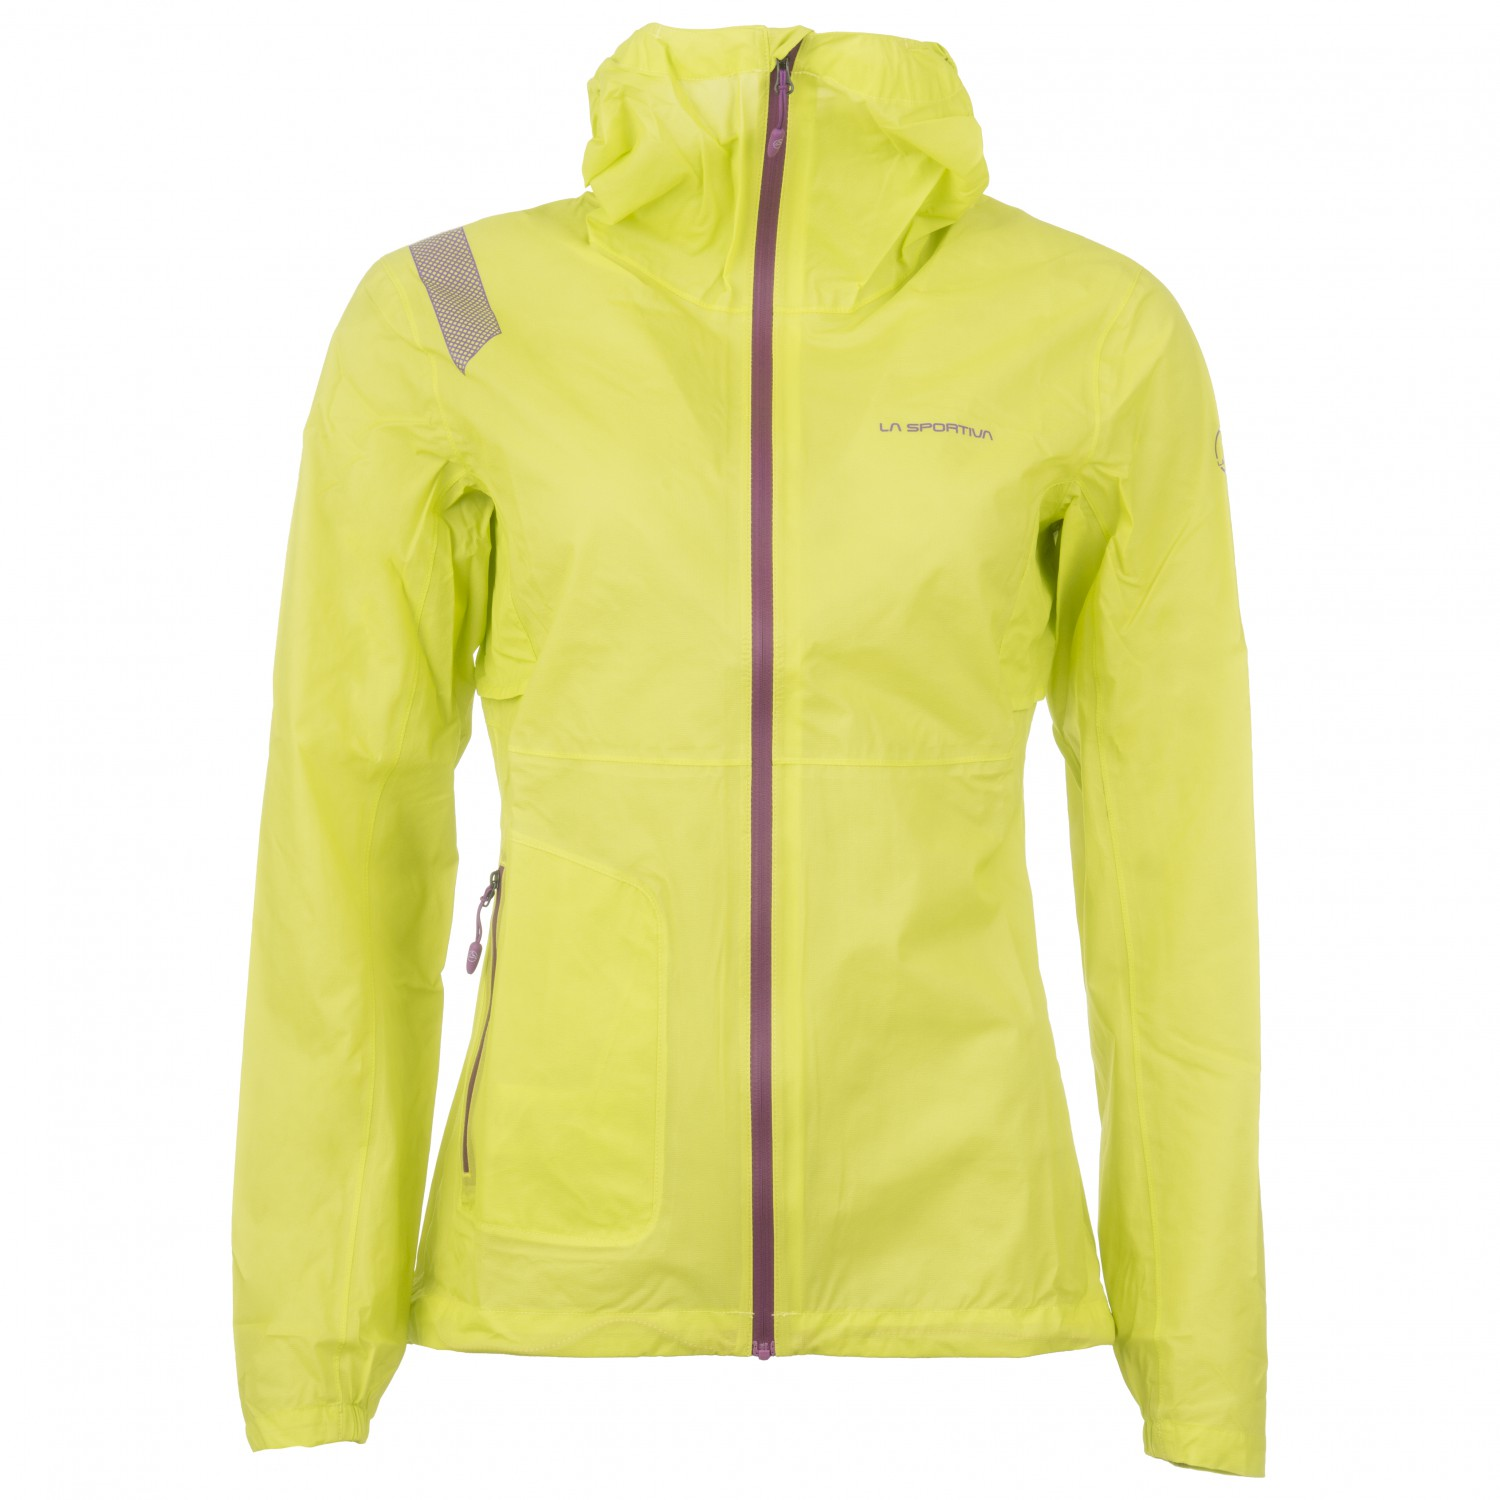 Hail Sportiva Jacket Women's Waterproof La NymnOv0w8